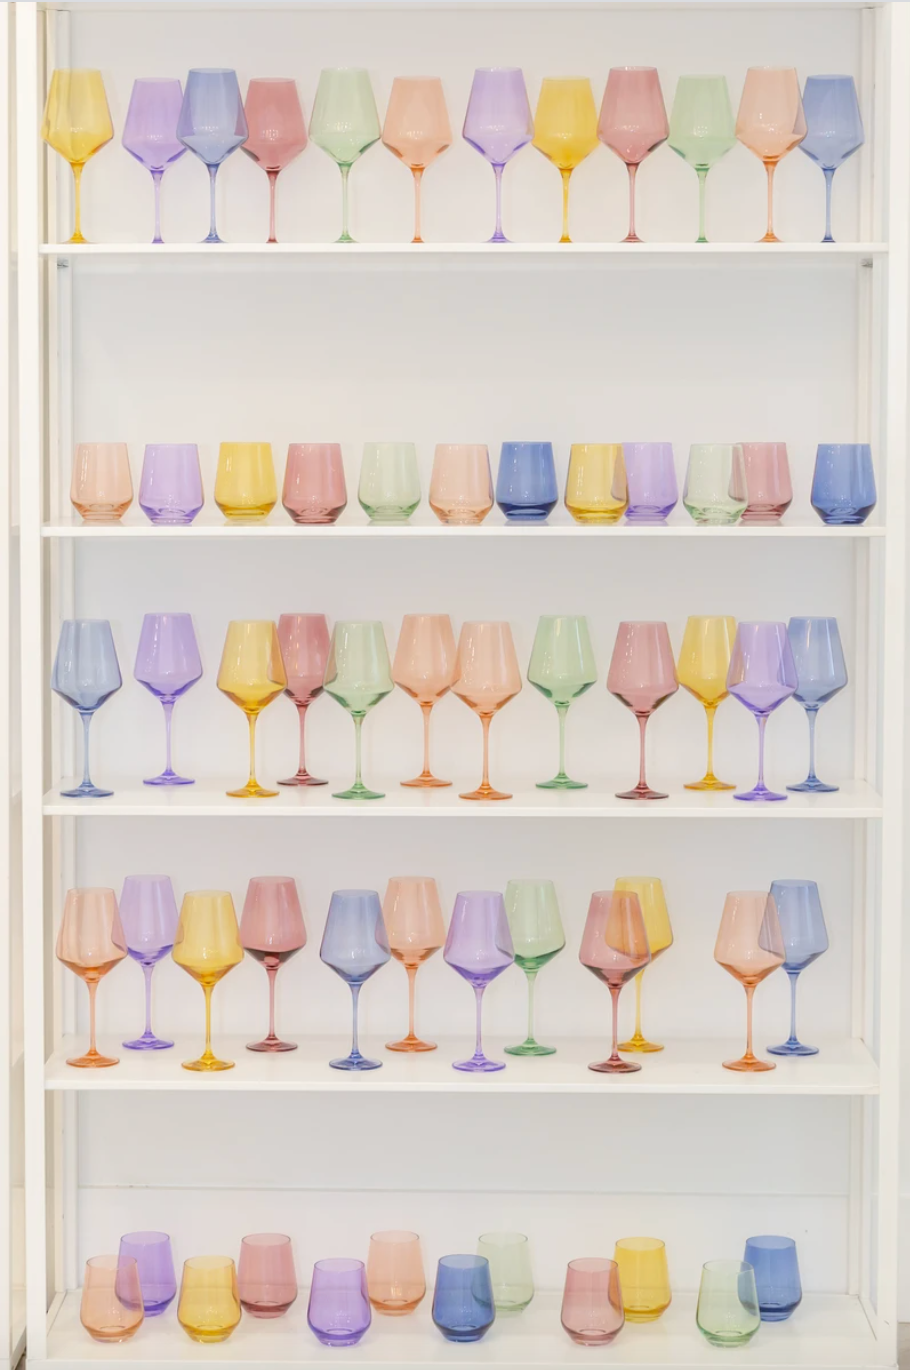 A variety of colored glassware sits inside a white display cabinet